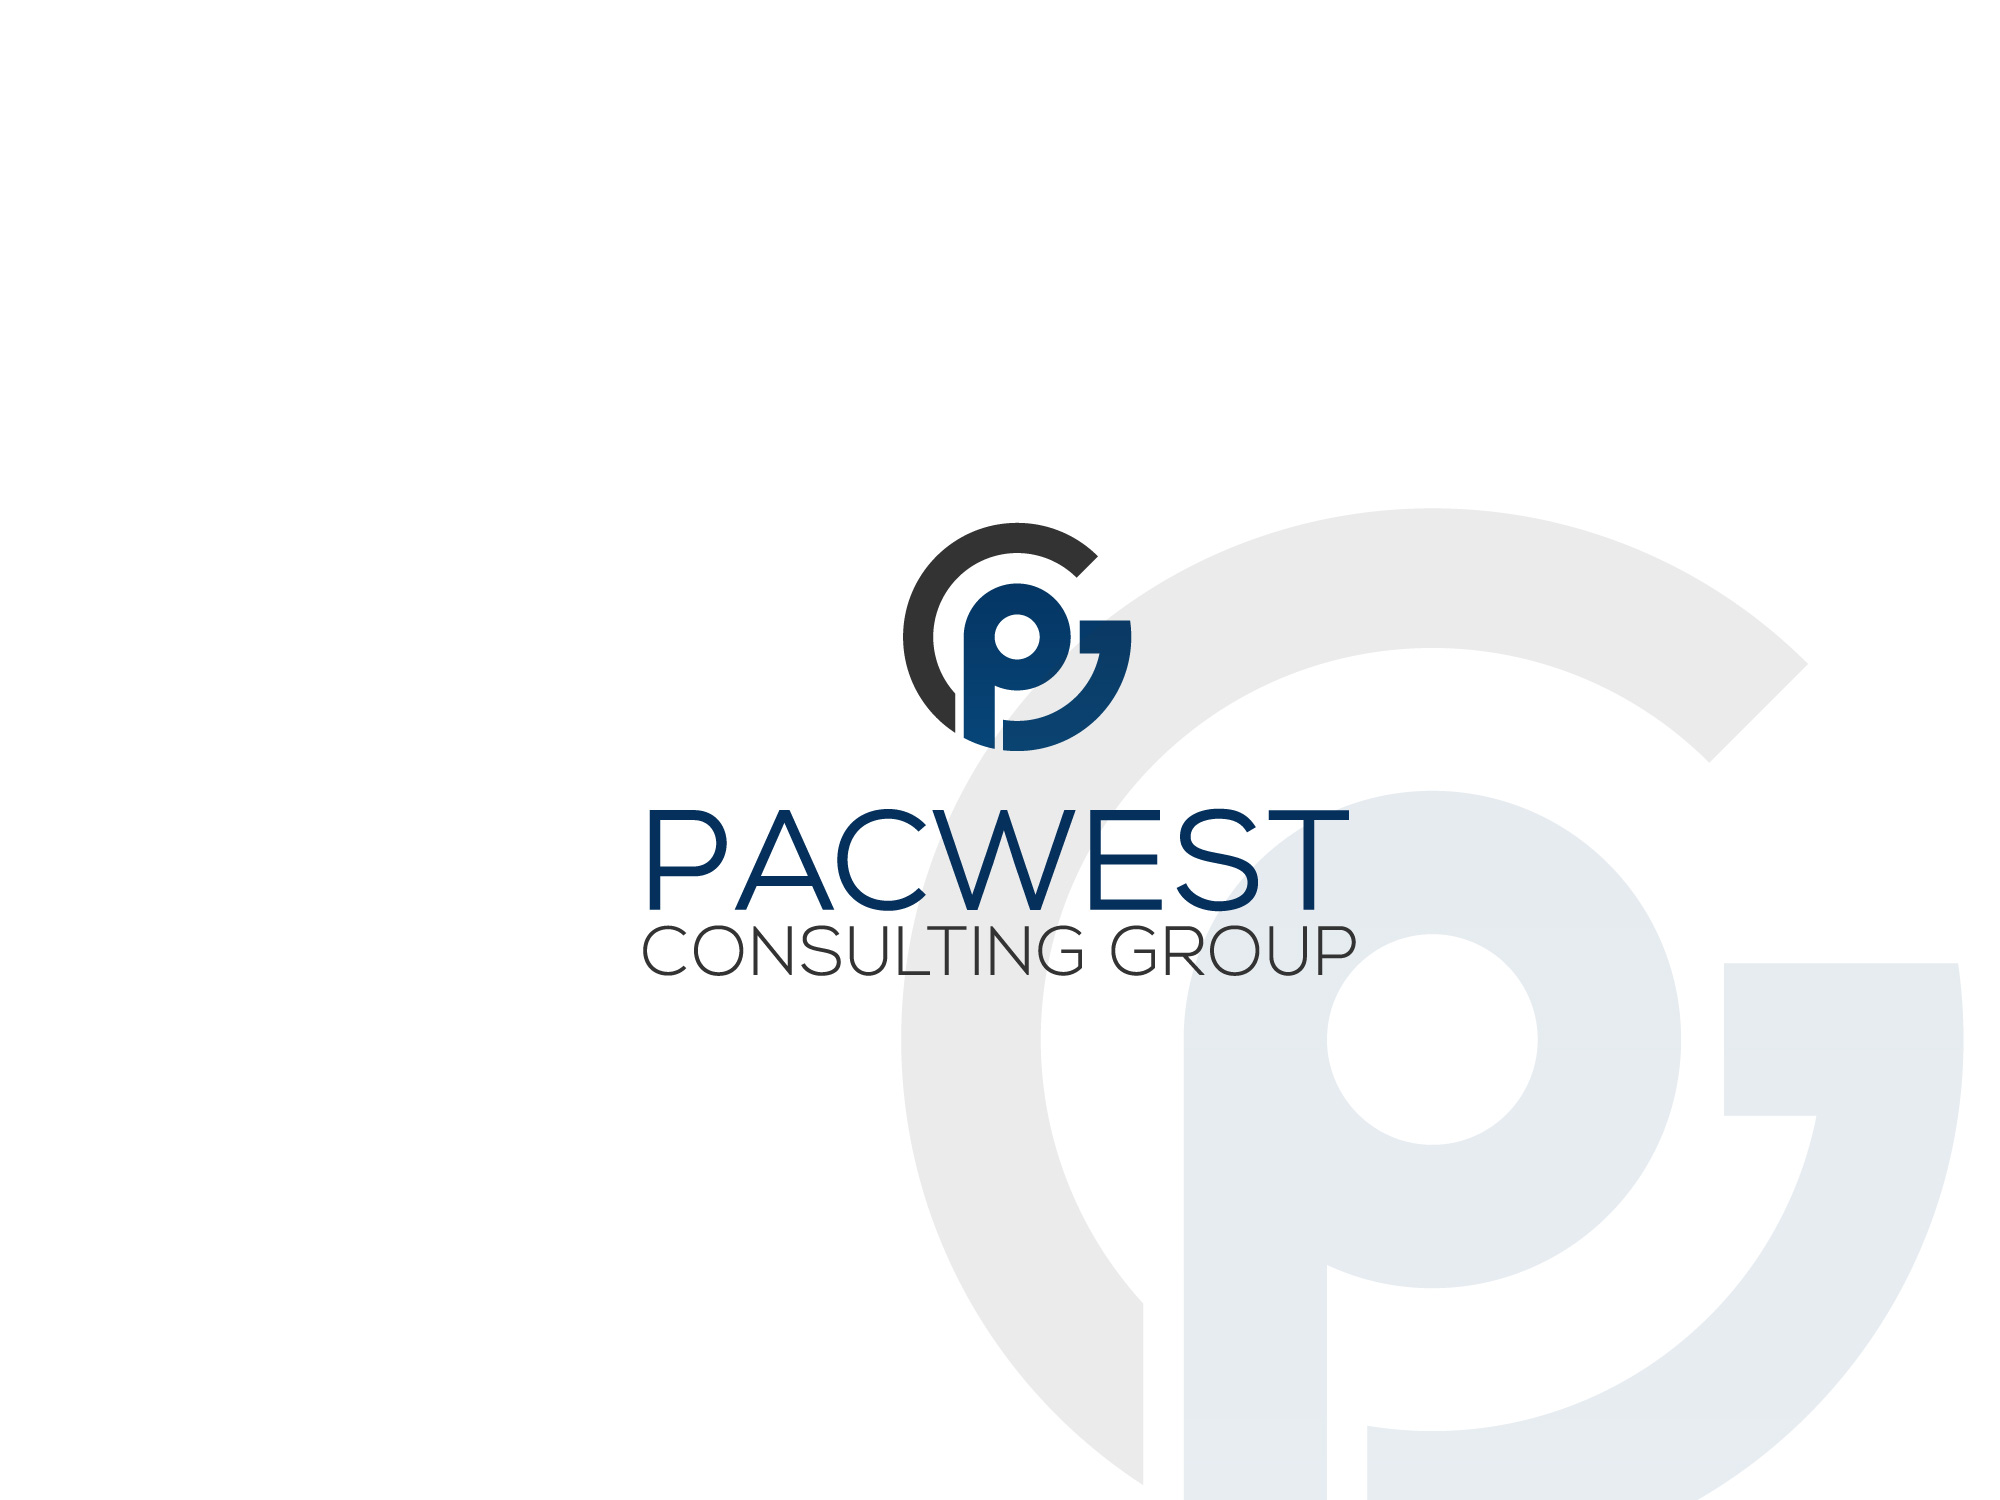 Logo Design by MD SHOHIDUL ISLAM - Entry No. 58 in the Logo Design Contest Imaginative Logo Design for Pacwest Consulting Group.